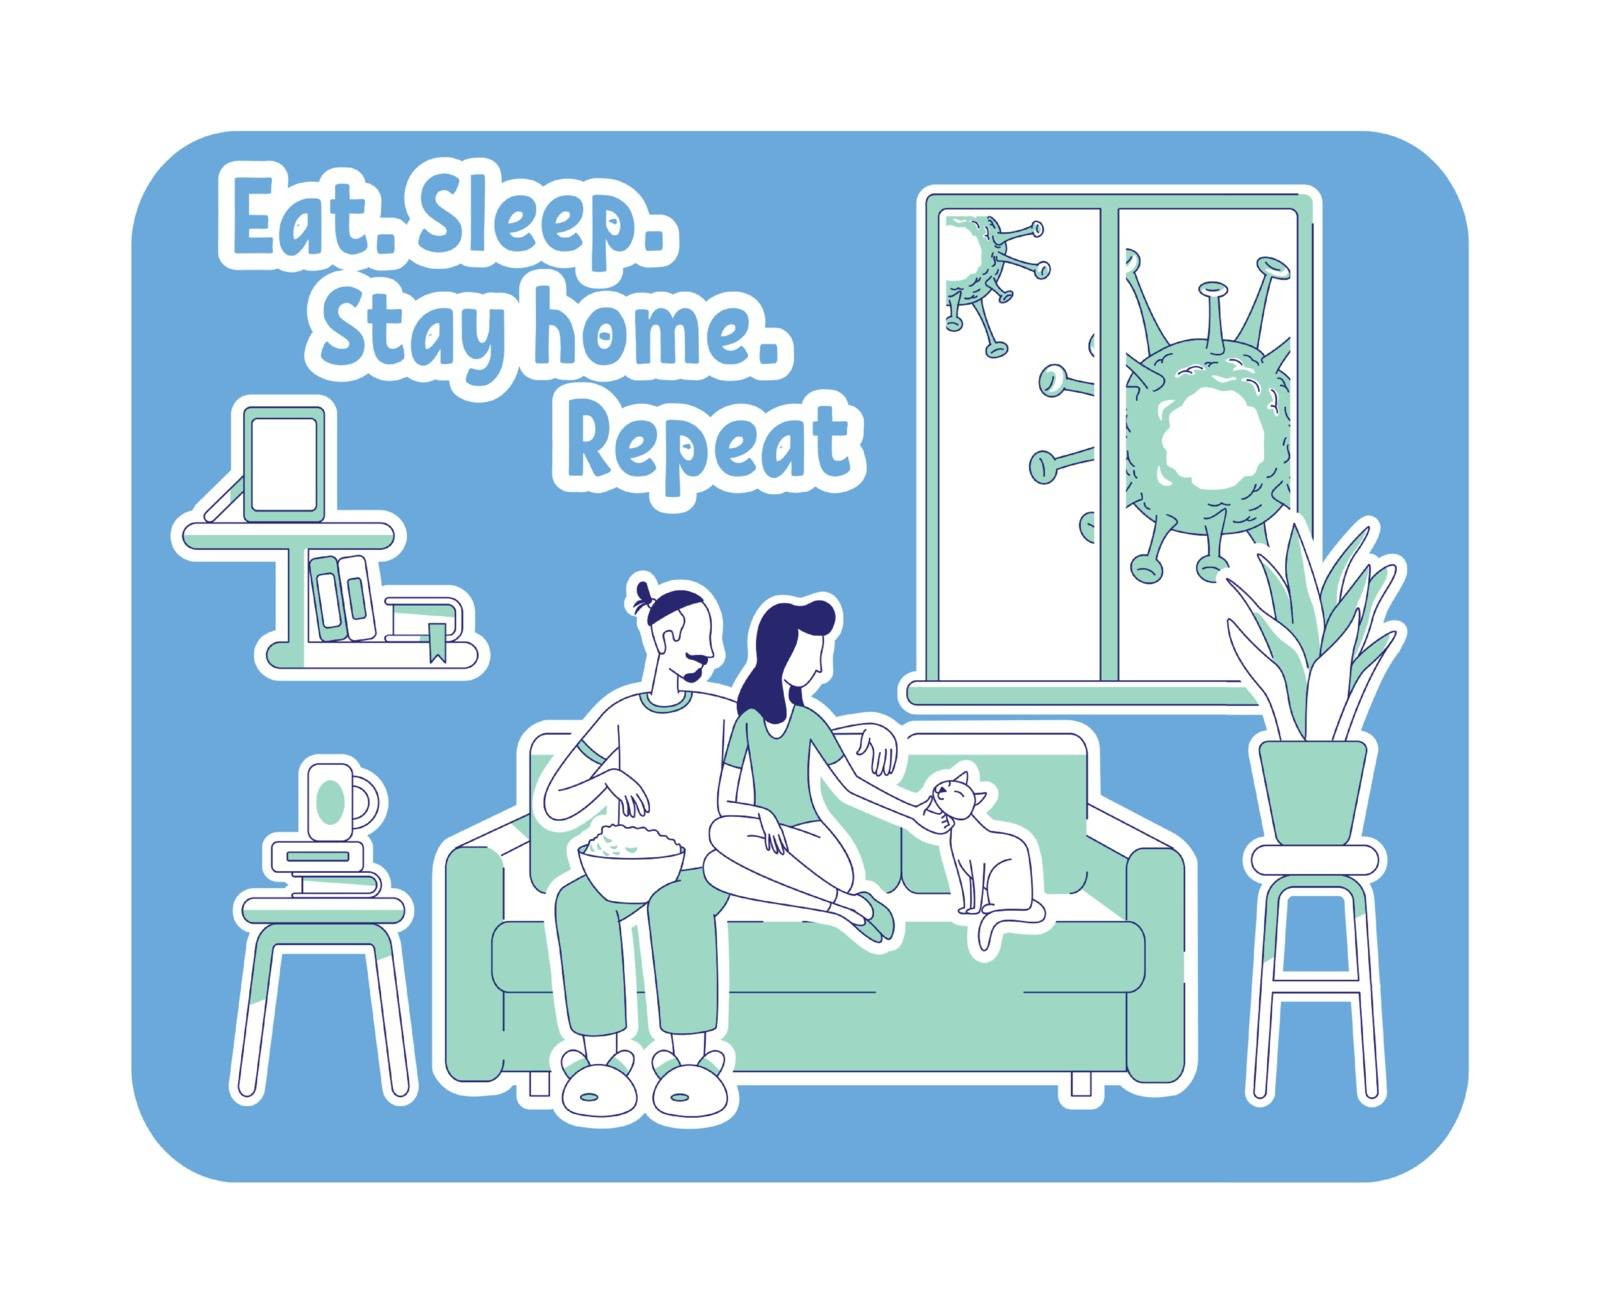 Eat, sleep, stay home, repeat thin line concept vector illustration. Couple chill on sofa. Man and woman sit on couch. Quarantine 2D cartoon characters for web design. Self isolation creative idea. ZIP file contains: EPS, JPG. If you are interested in custom design or want to make some adjustments to purchase the product, don't hesitate to contact us! bsd@bsdartfactory.com